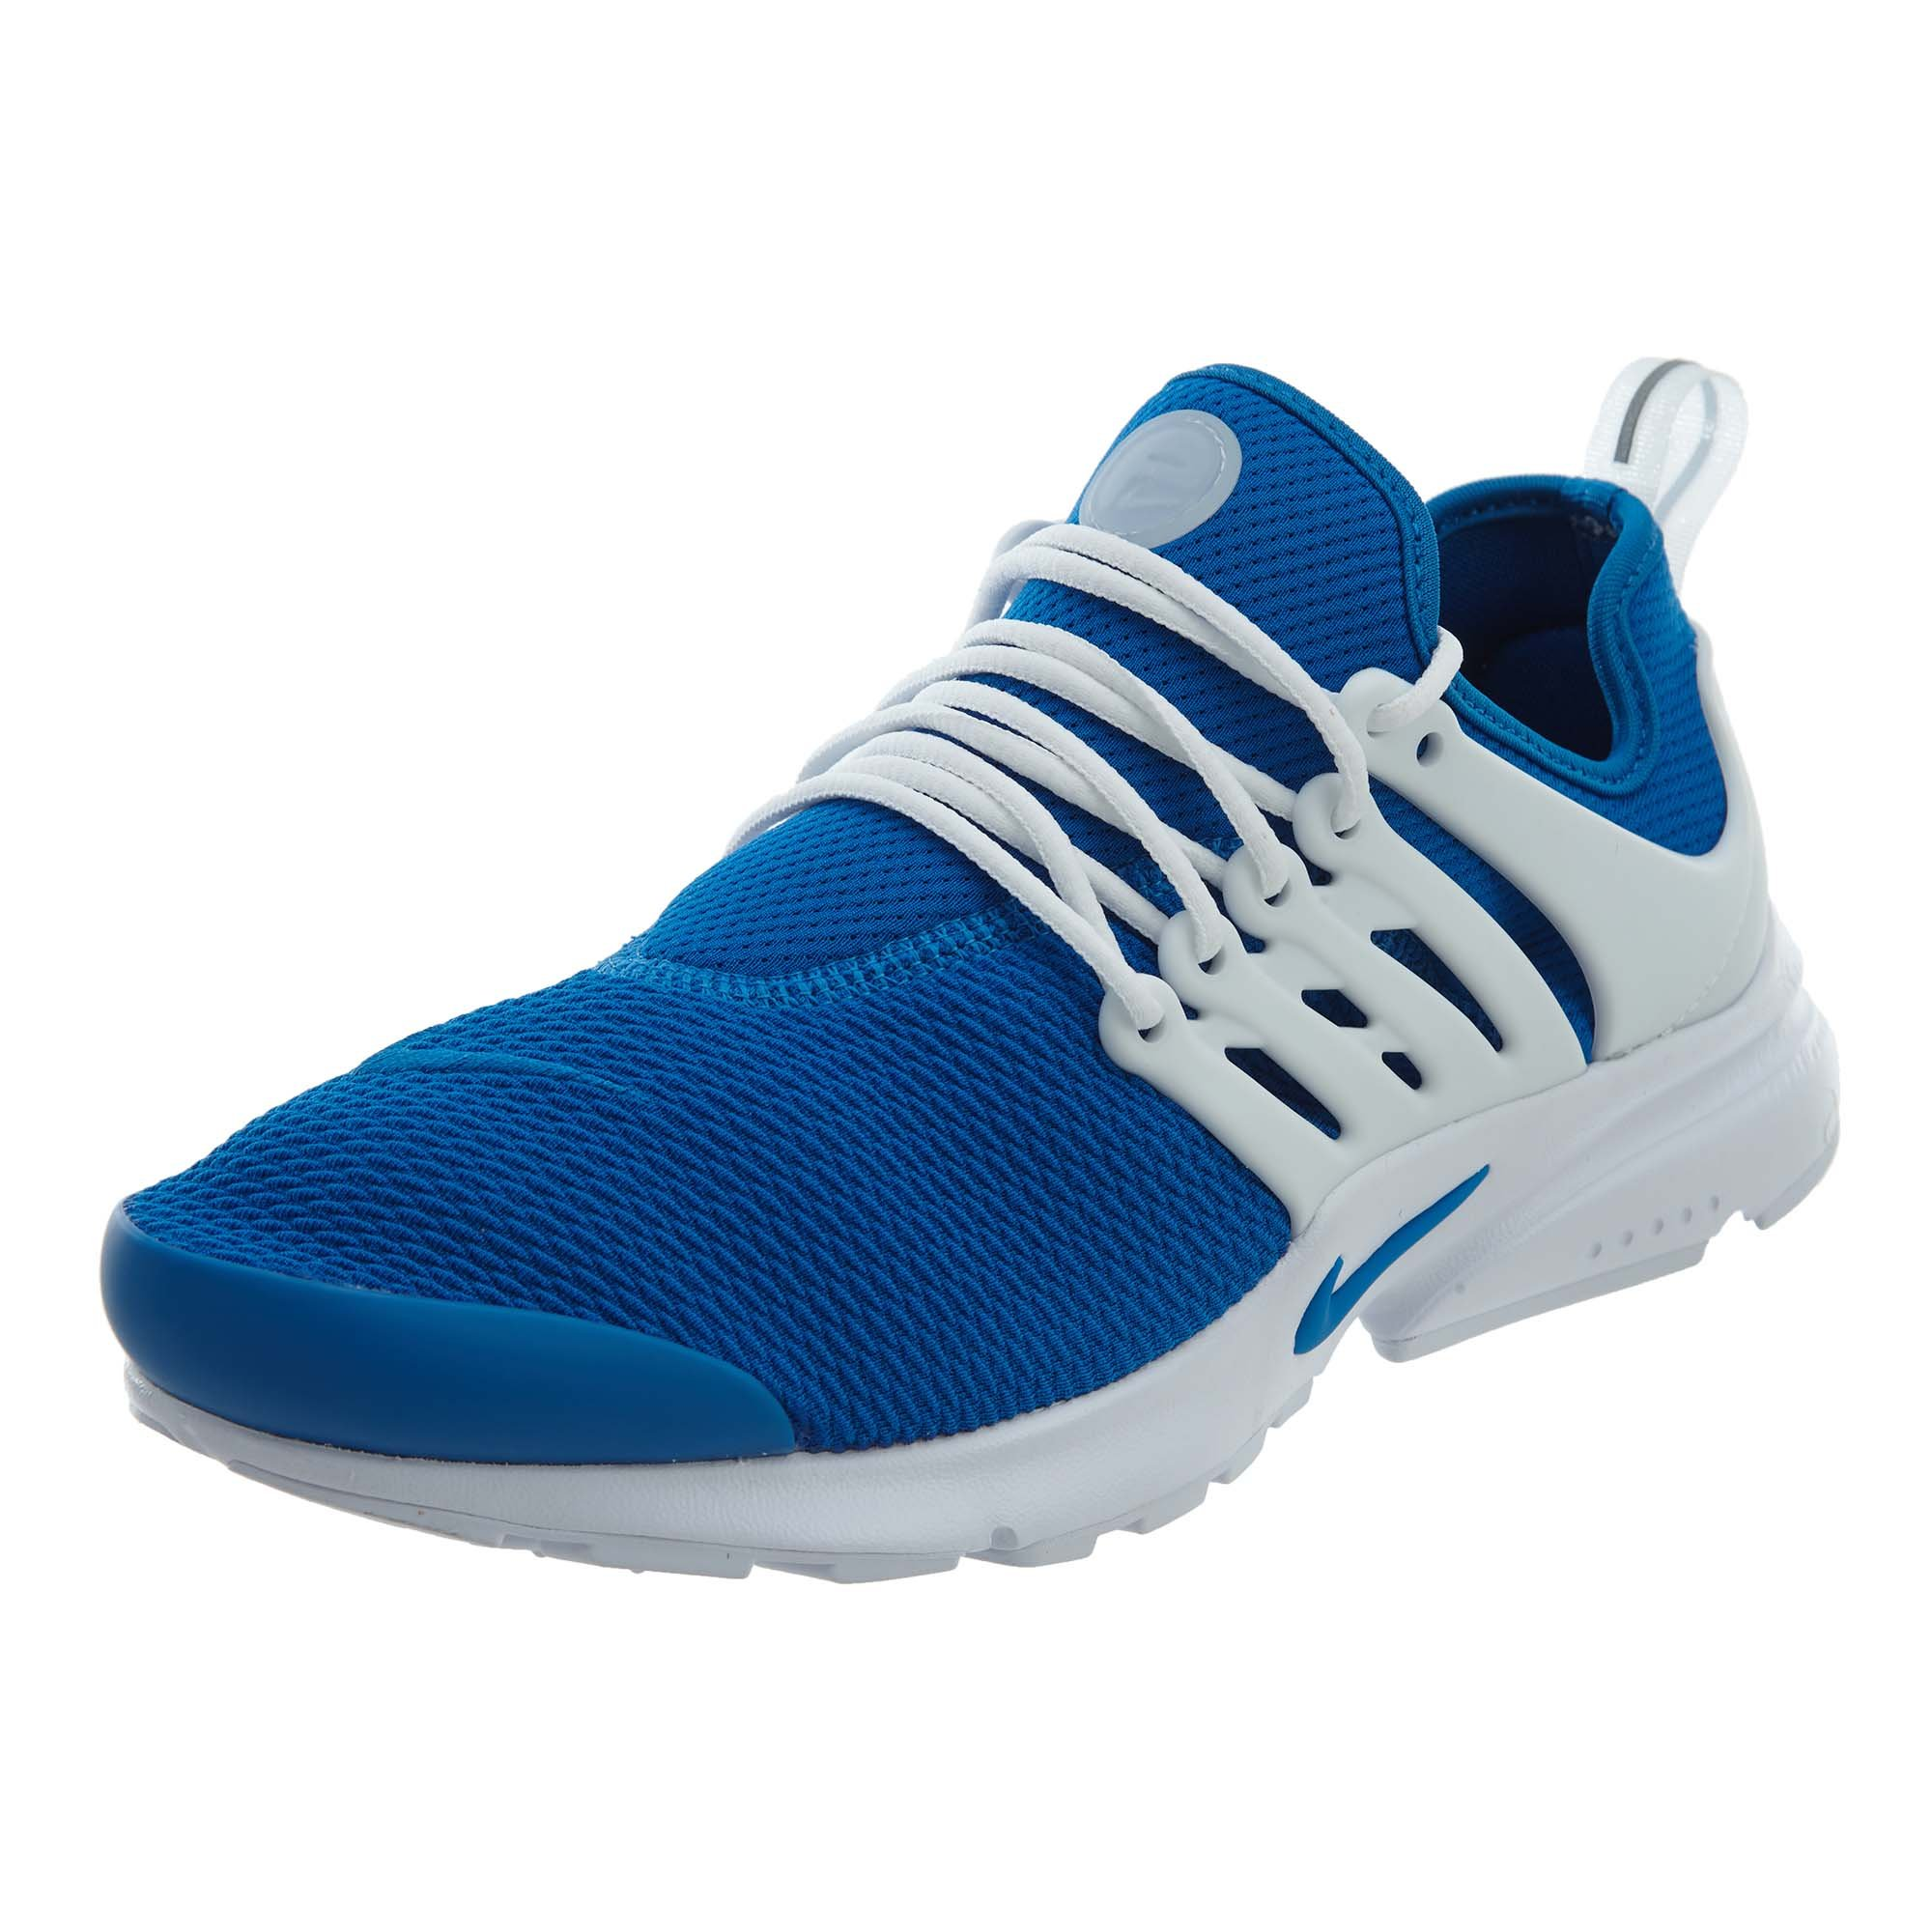 promo code 67574 c41ae NIKE Women's Air Presto Blue Nebula/Blue Nebula White Running Shoe 7 Women  US